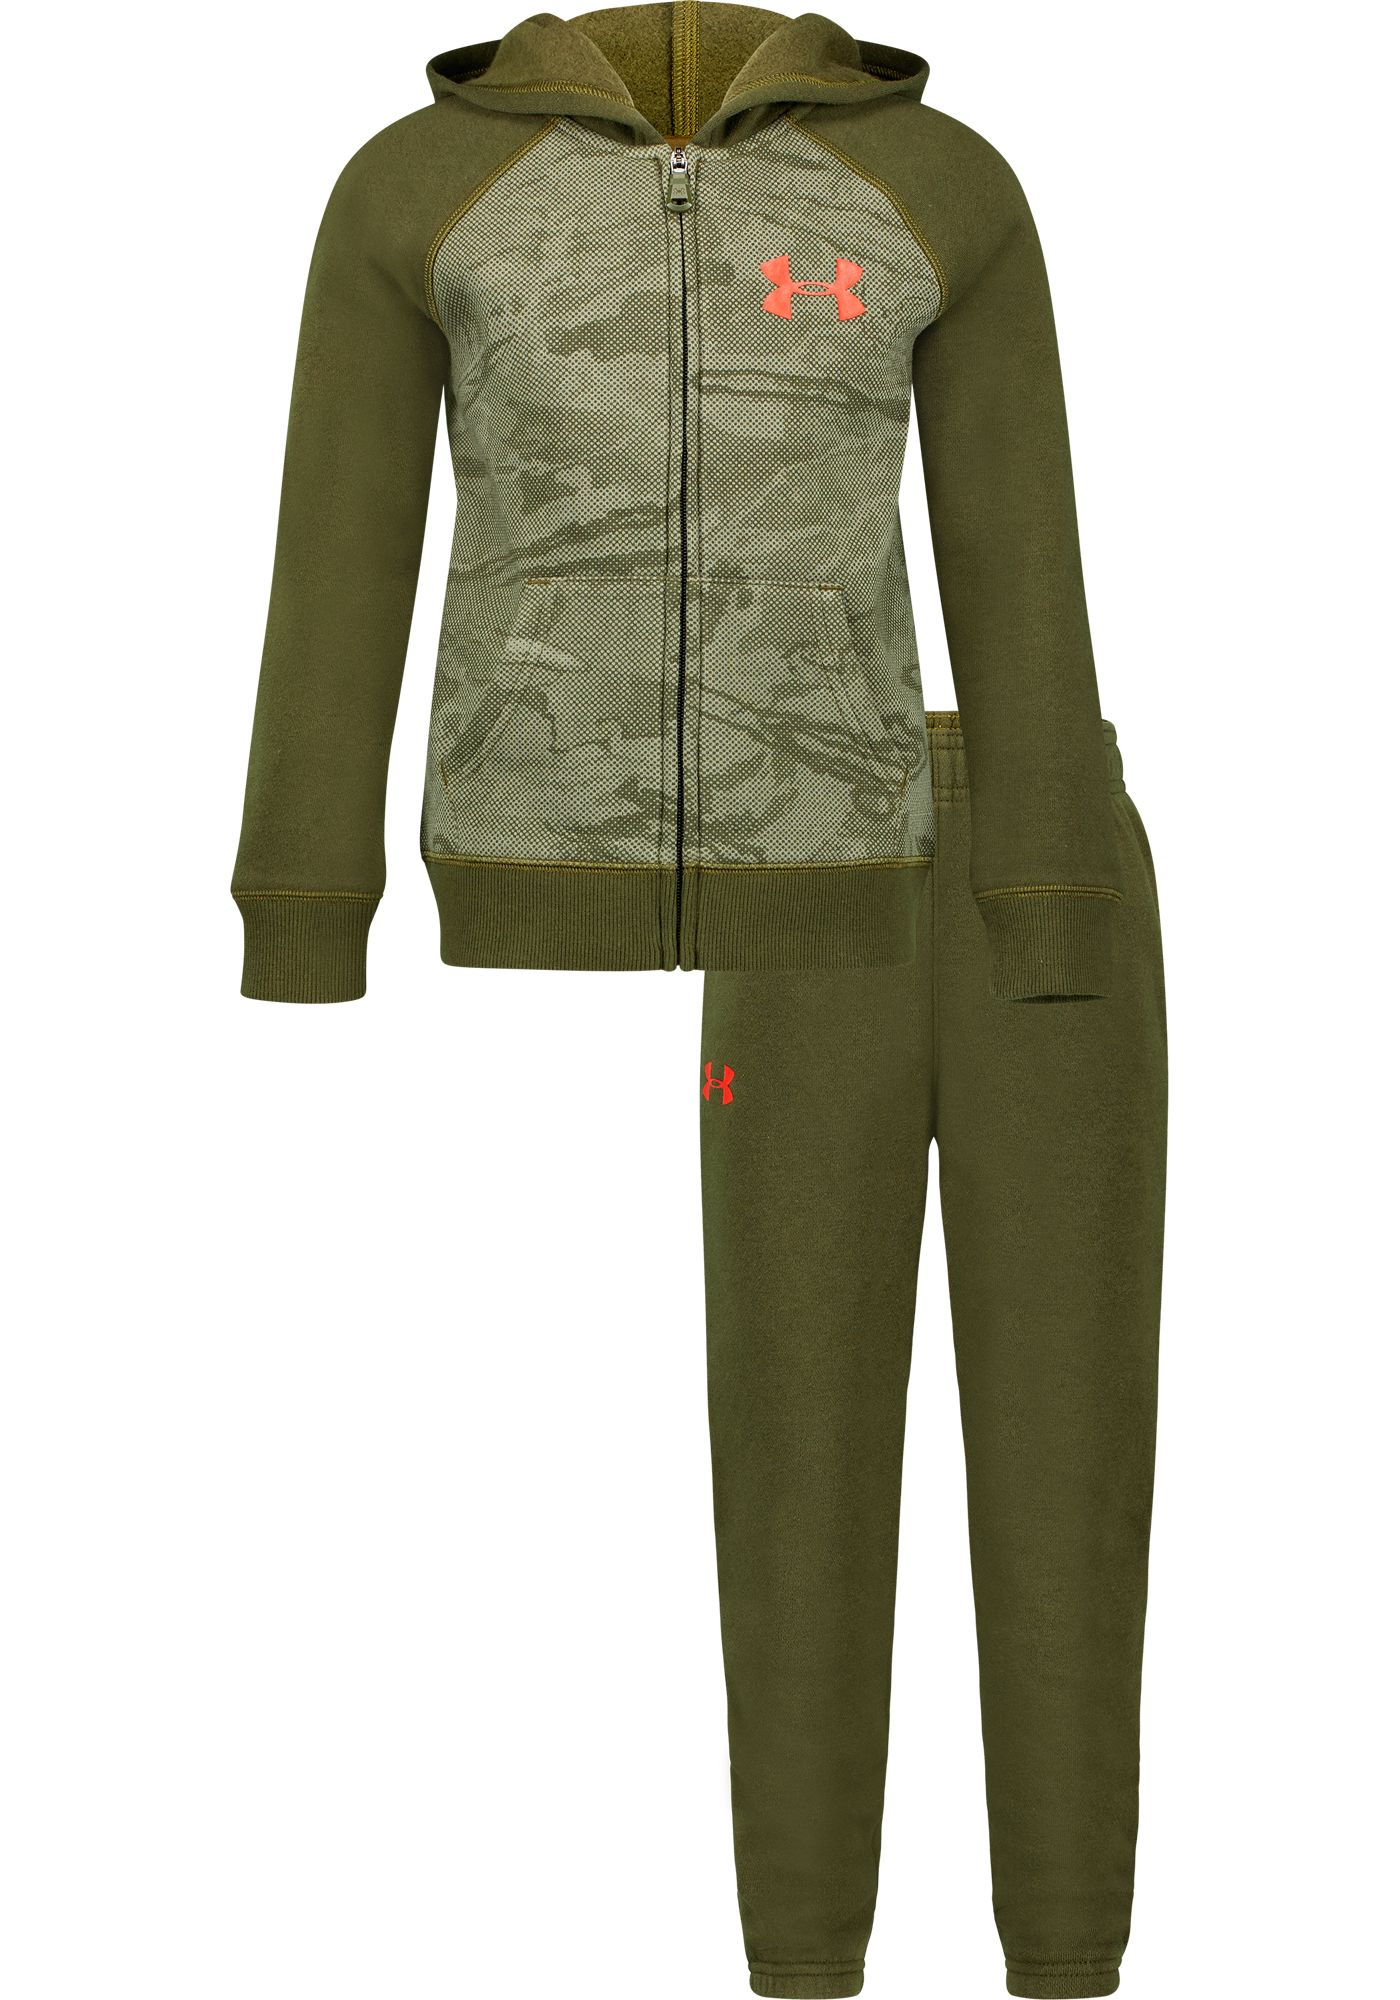 Under Armour Toddler Boys' Halftone Camo Hoodie and Pants Set